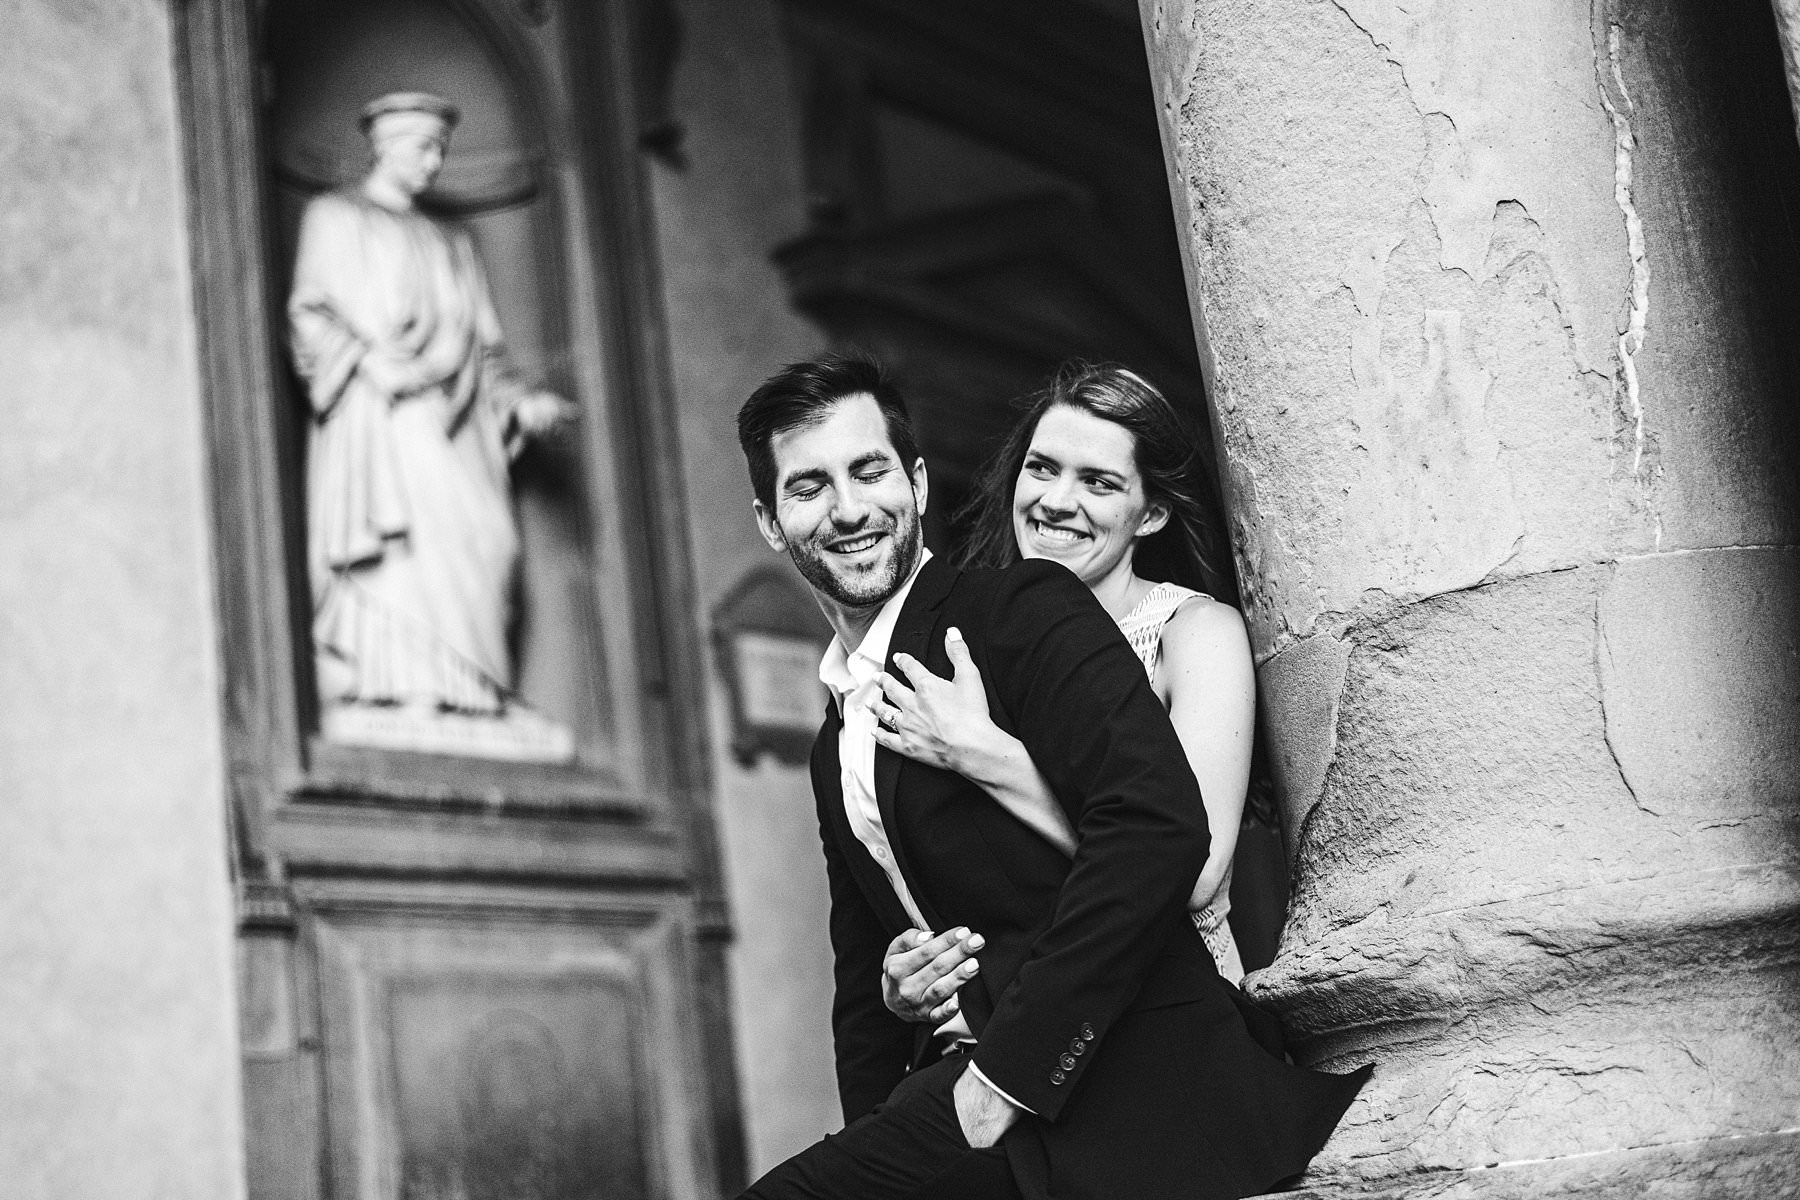 A sunset photoshoot to cherish your engagement forever. Exciting and fun couple portrait photo in the heart of Florence